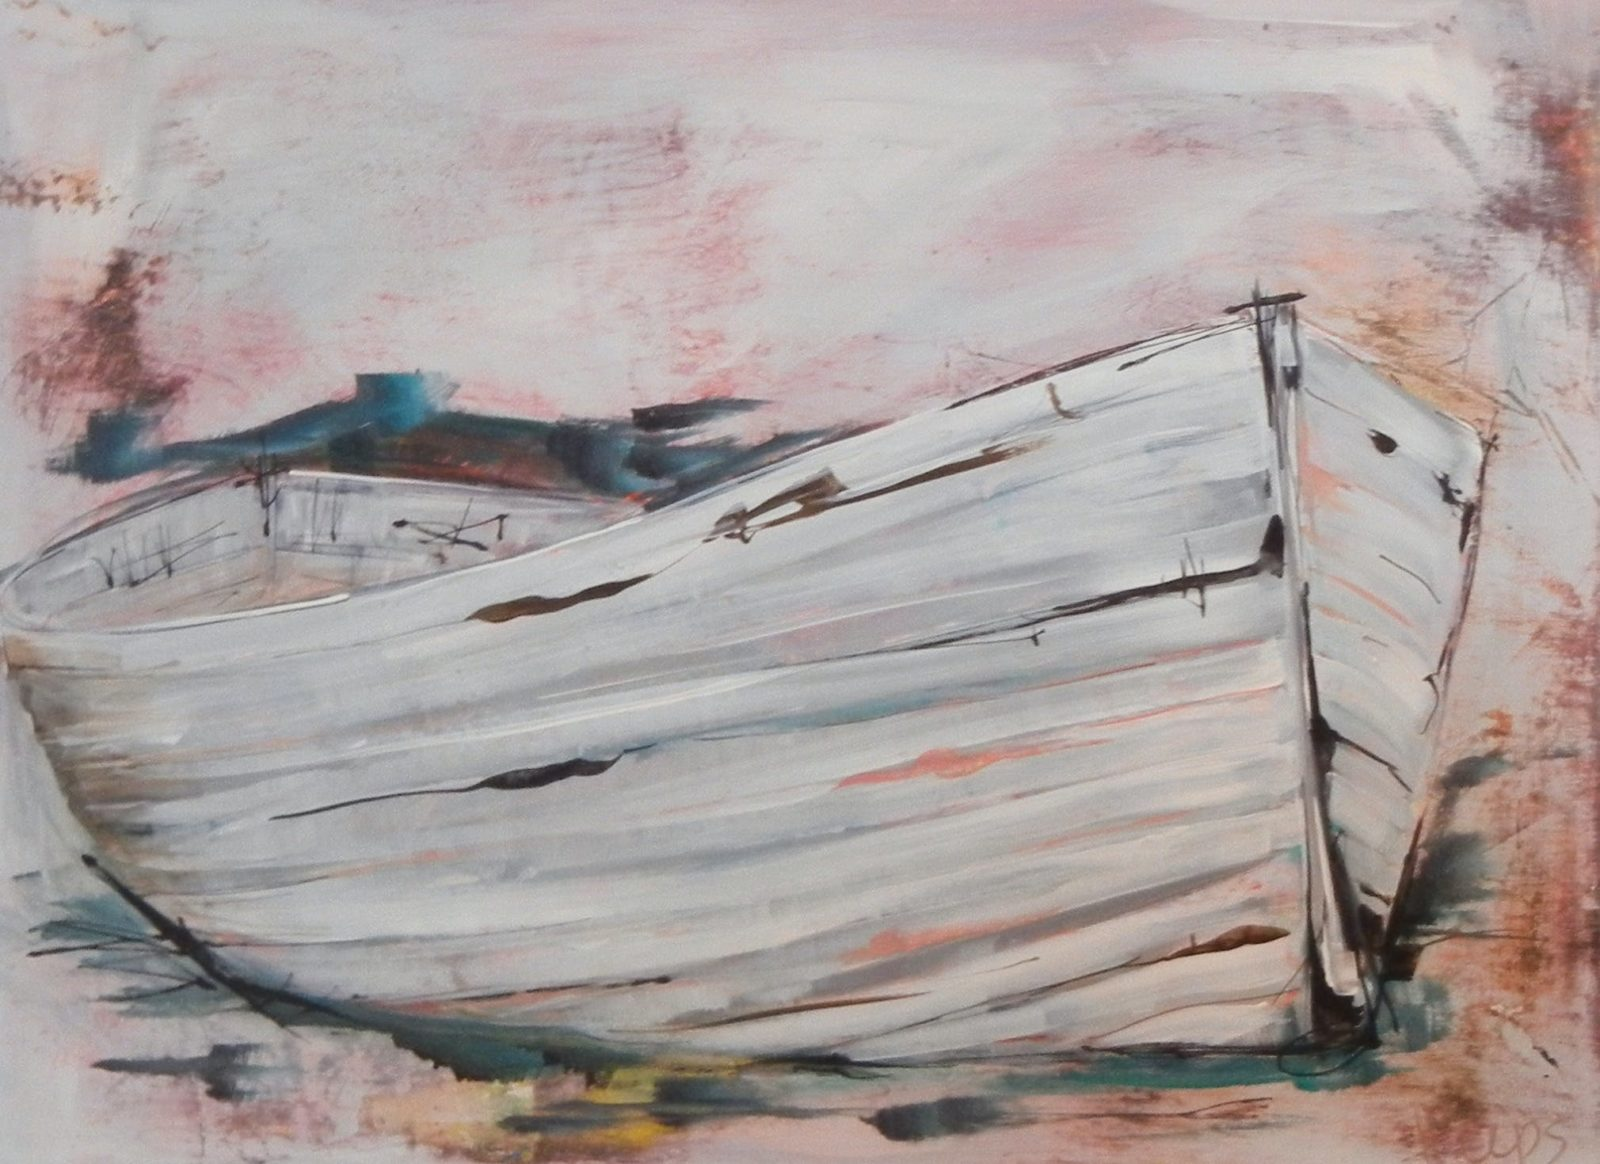 Weathered white boat. Acrylic paint on board 76 x 61cm.